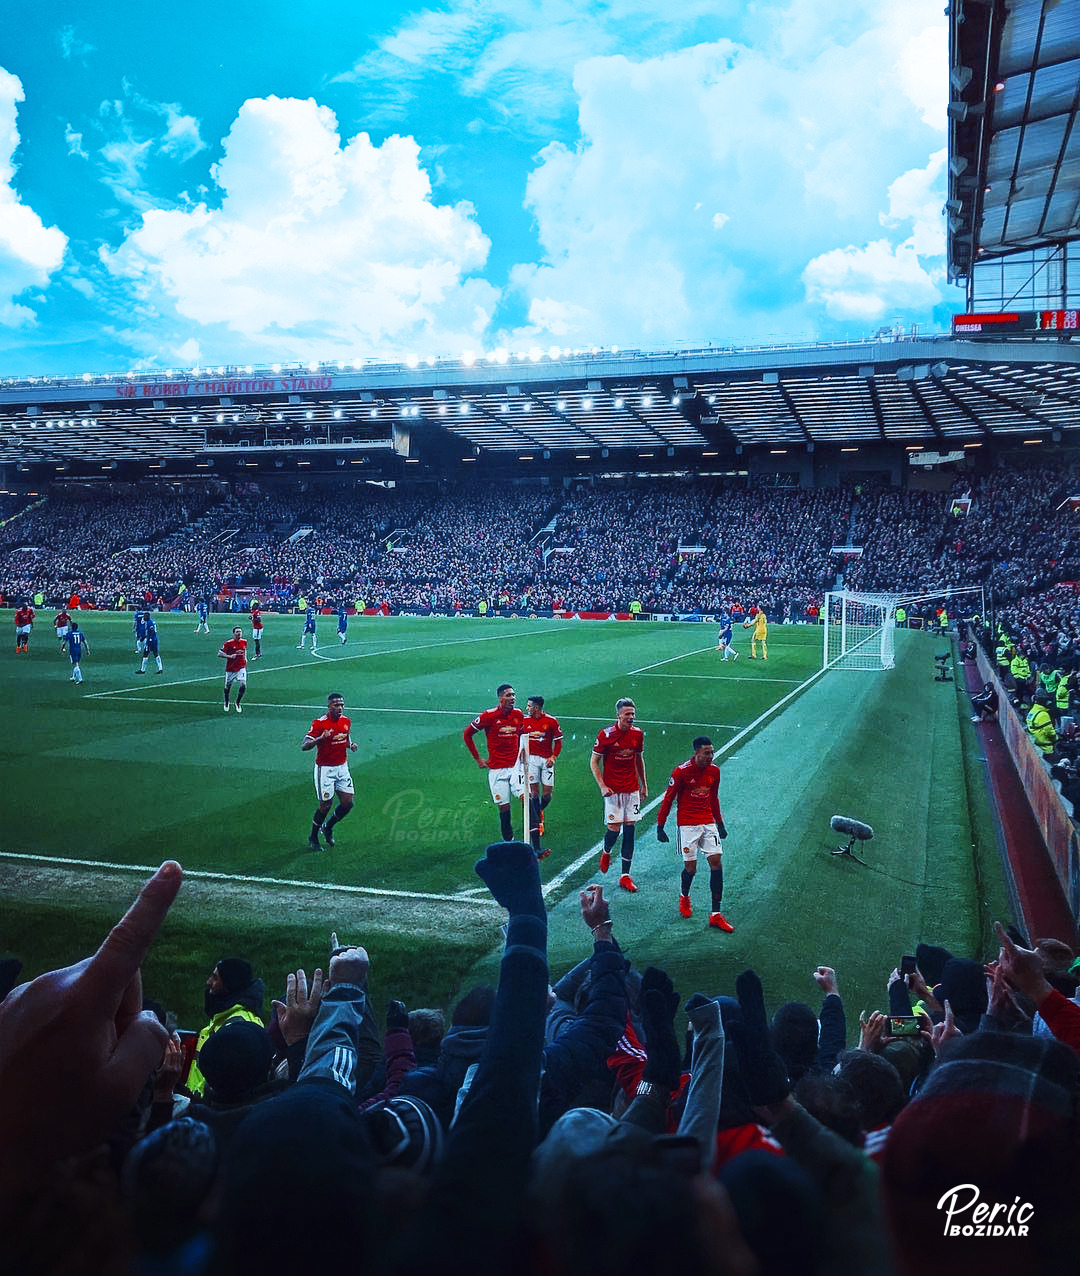 Mufc Hq Edits Old Trafford X Manchester United X Sky Photo Edit